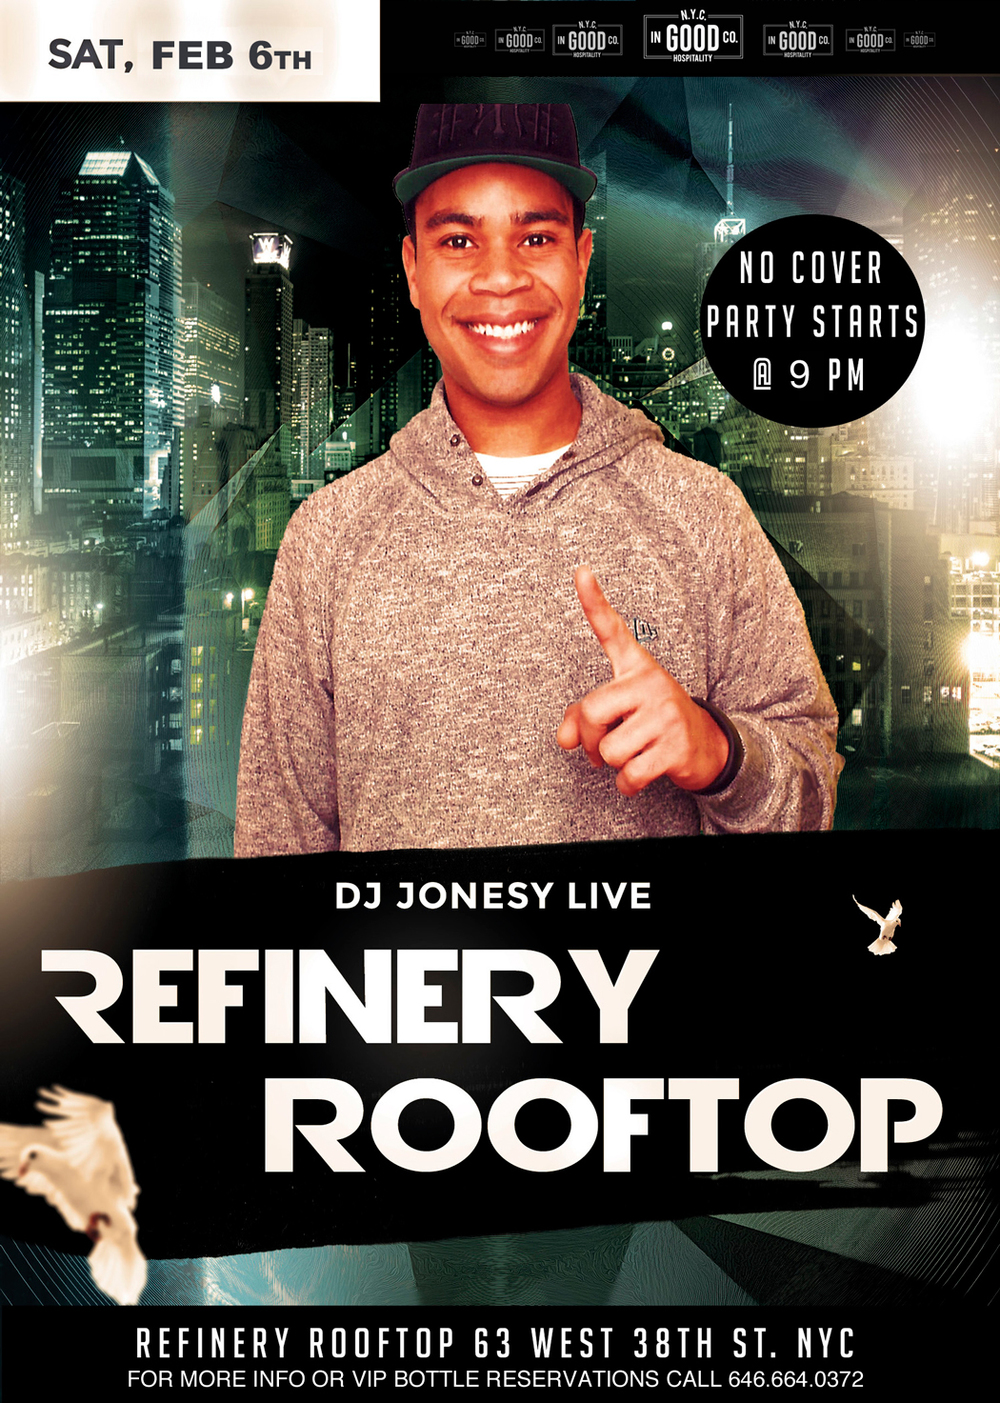 REFINERY ROOFTOP NYC Saturday, February 6th - 9 PM MUSIC BY JONESY